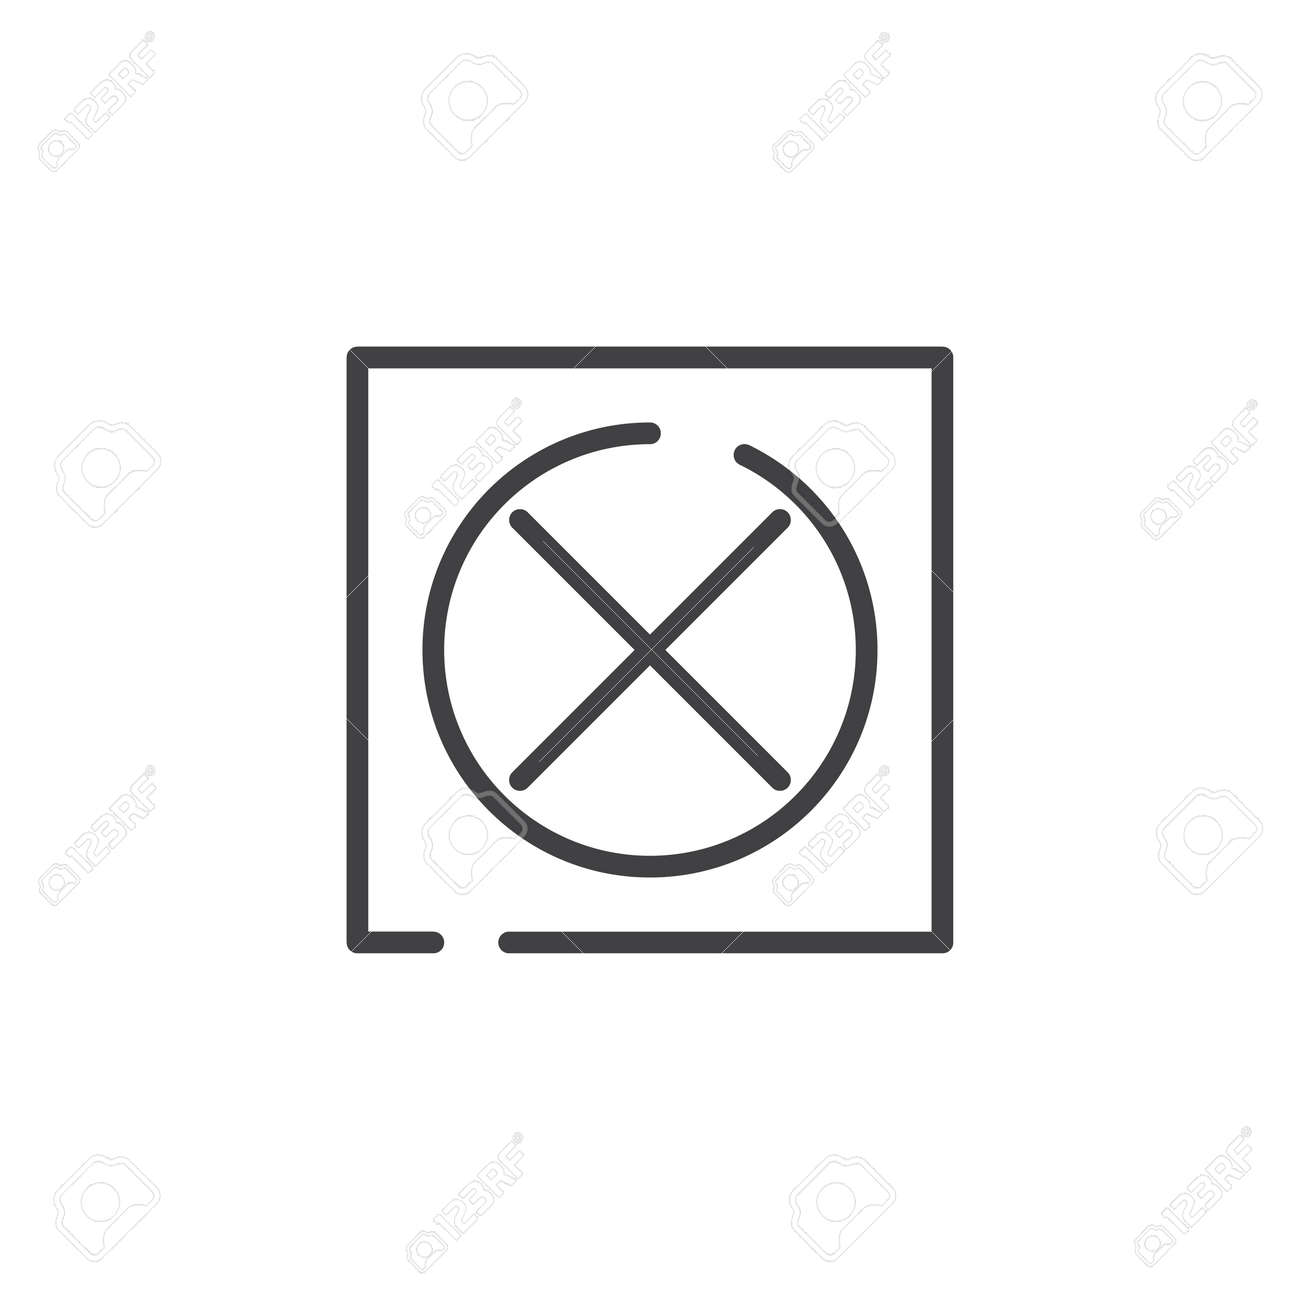 Do Not Tumble Dry Line Icon Outline Vector Sign Linear Style